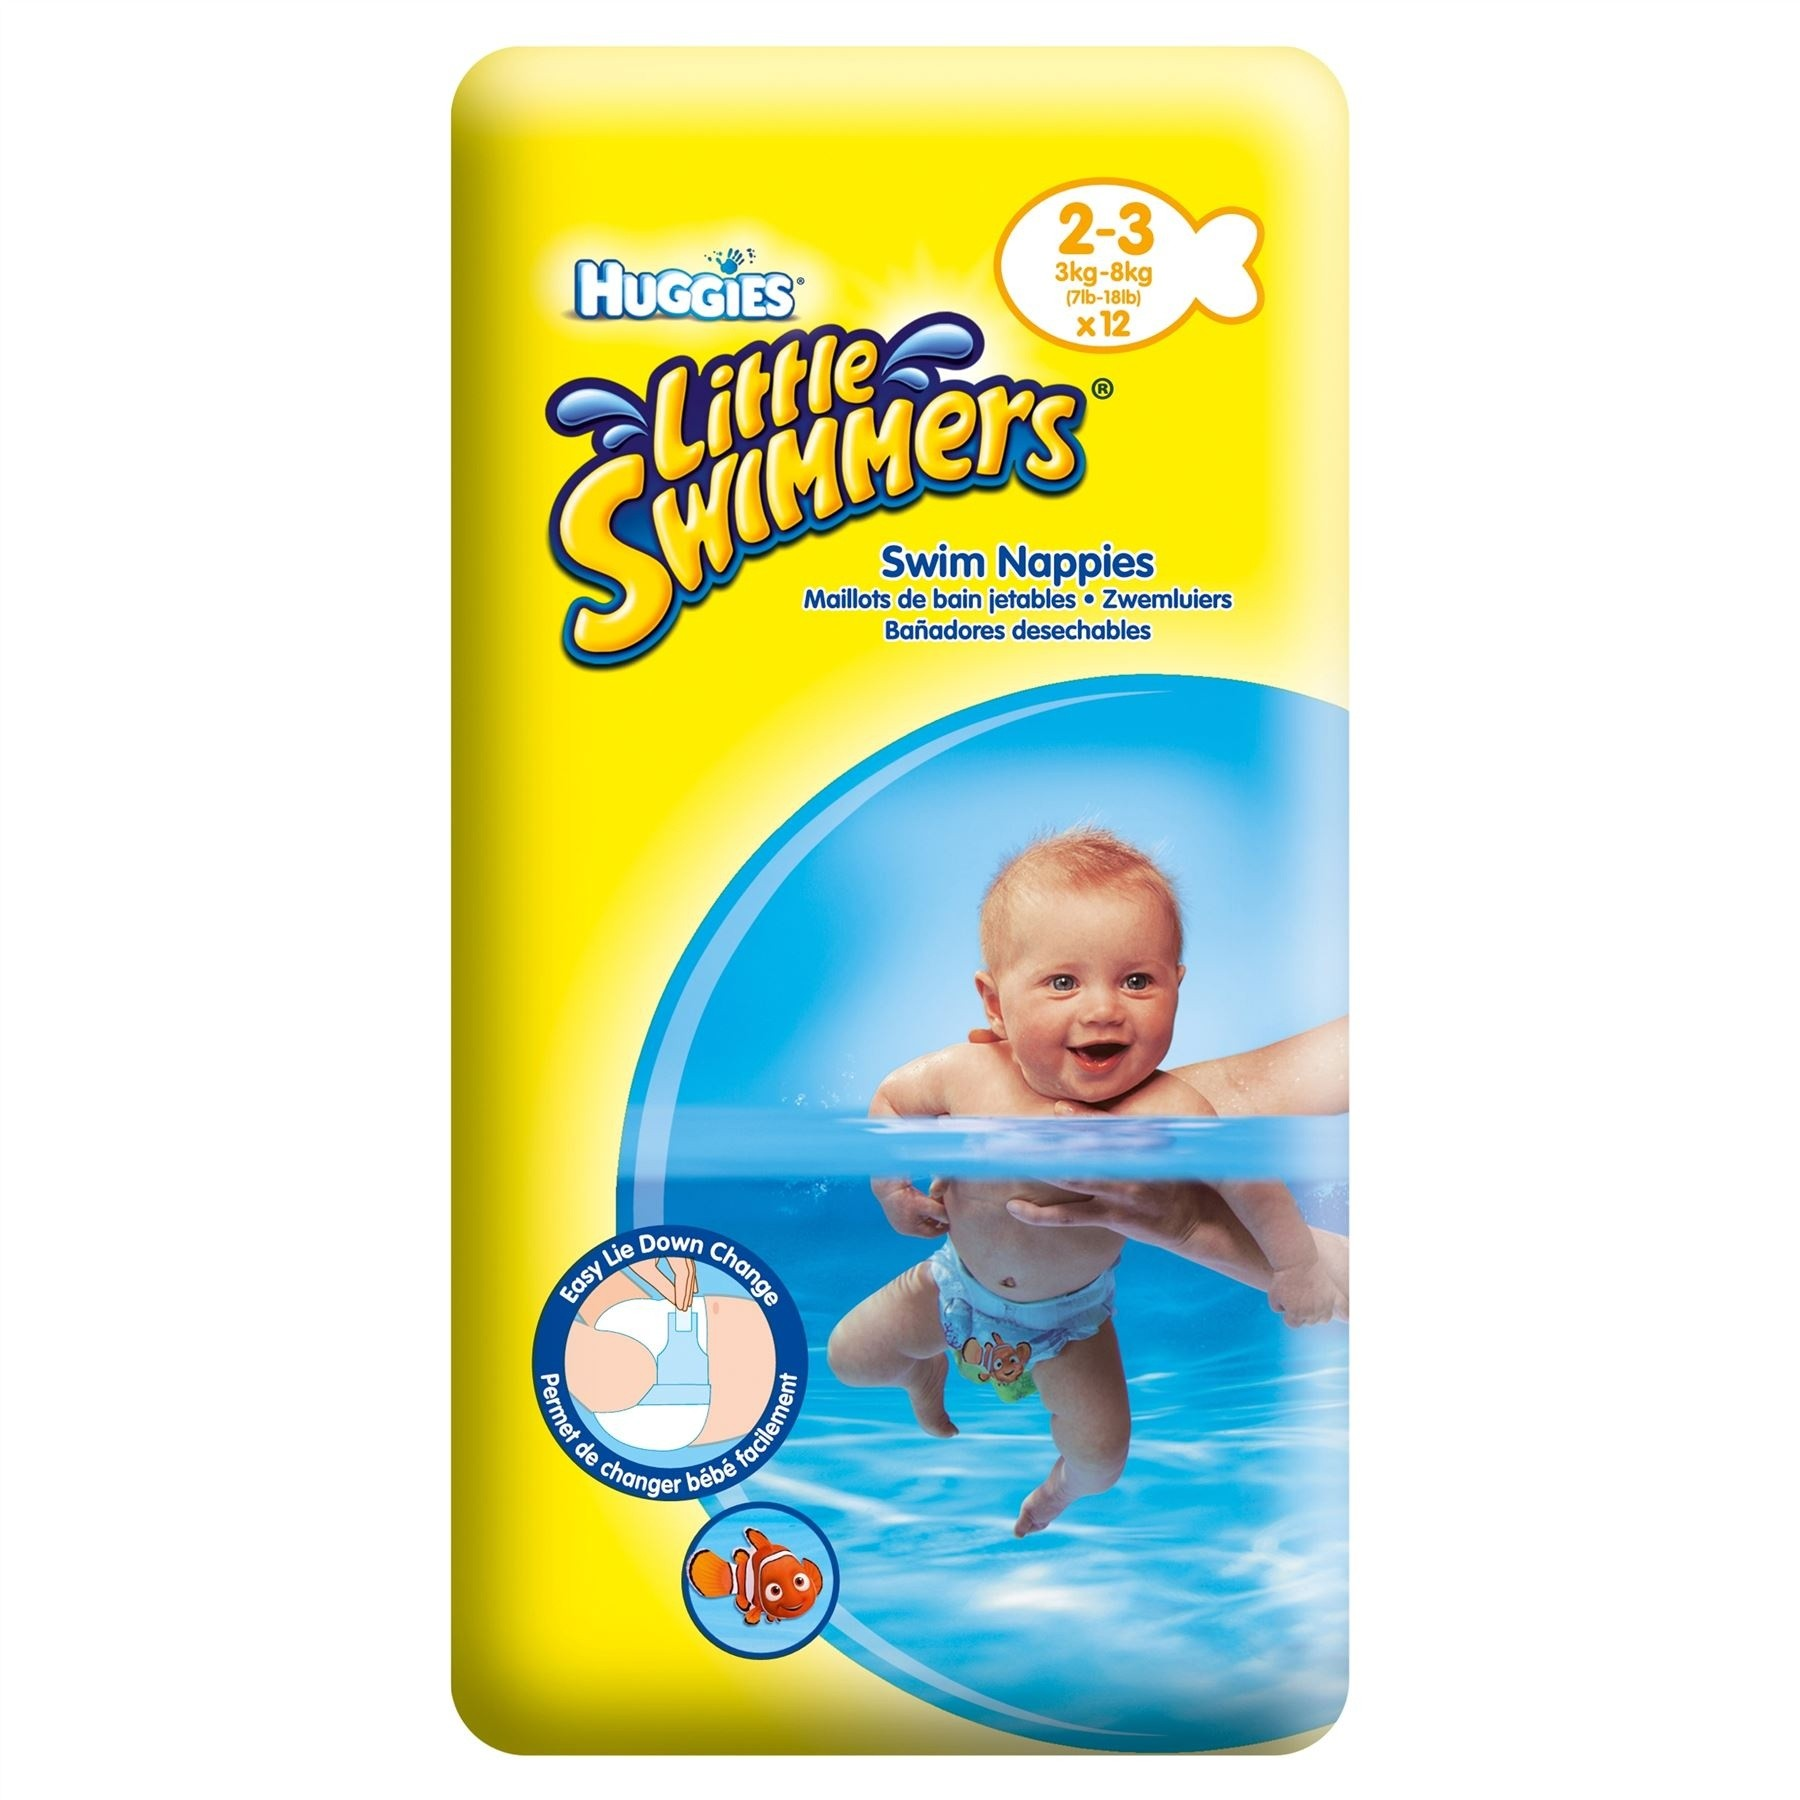 Huggies Little Swimmers Nappies Size 23